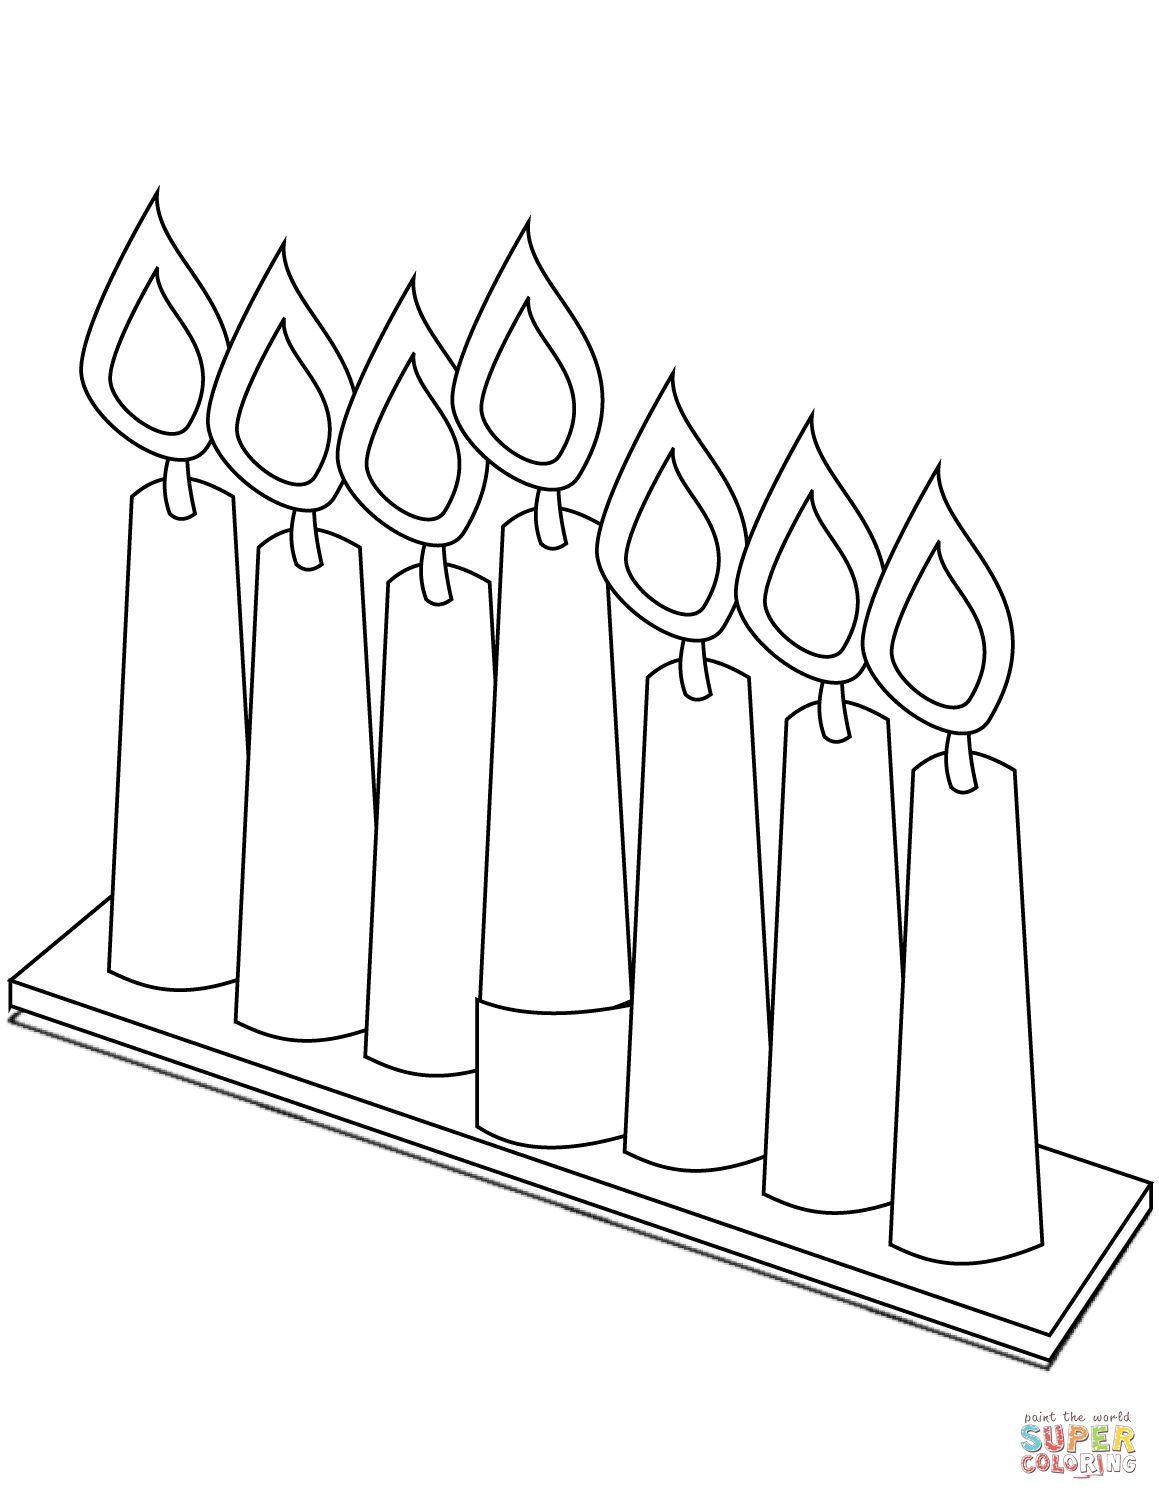 Seven Candles For Kwanzaa Coloring Page